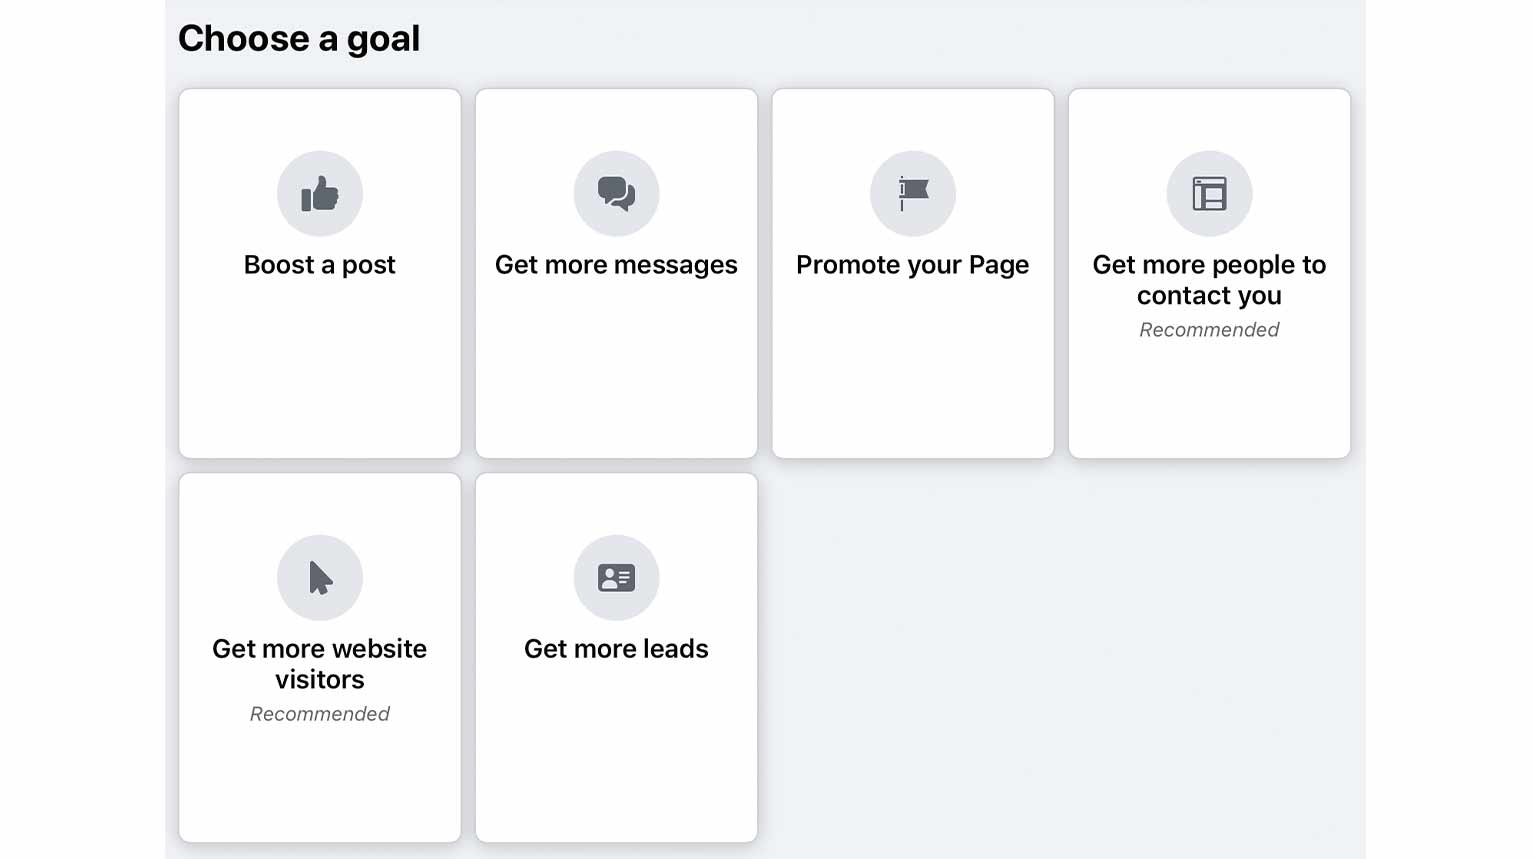 Advertising with Facebook Ads begins by choosing a goal.